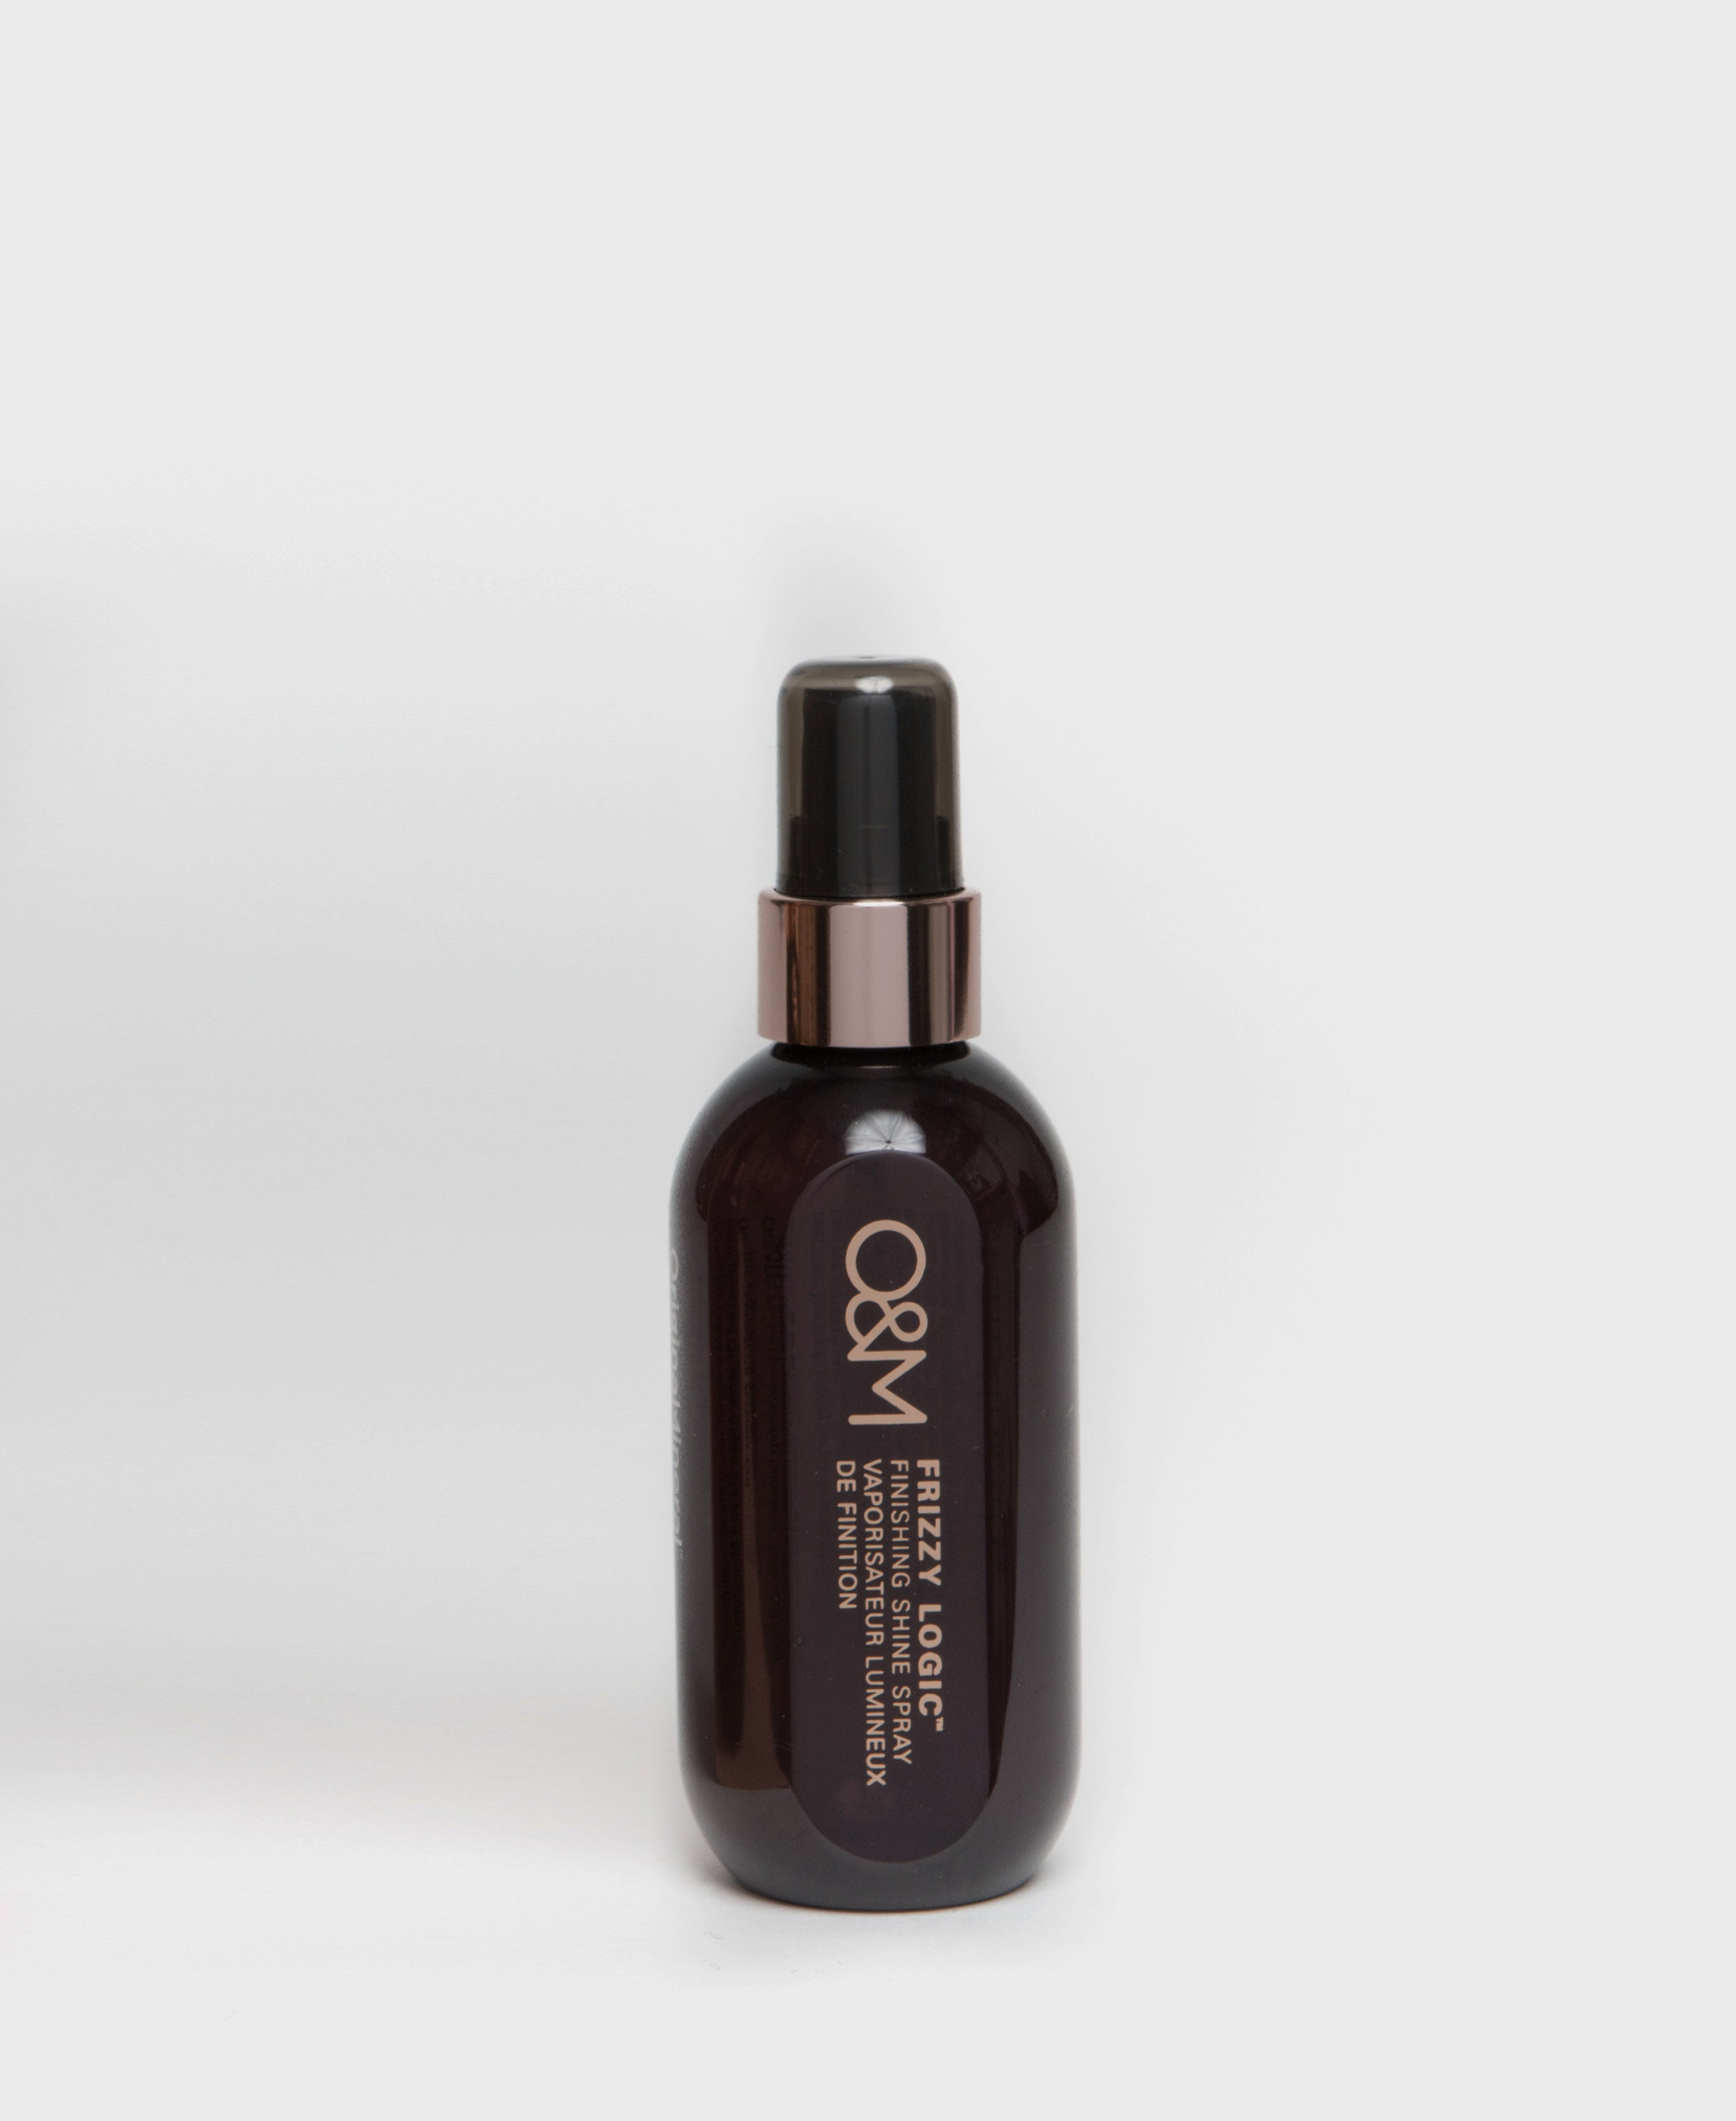 FRIZZY LOGIC FINISHING SHINE SPRAY